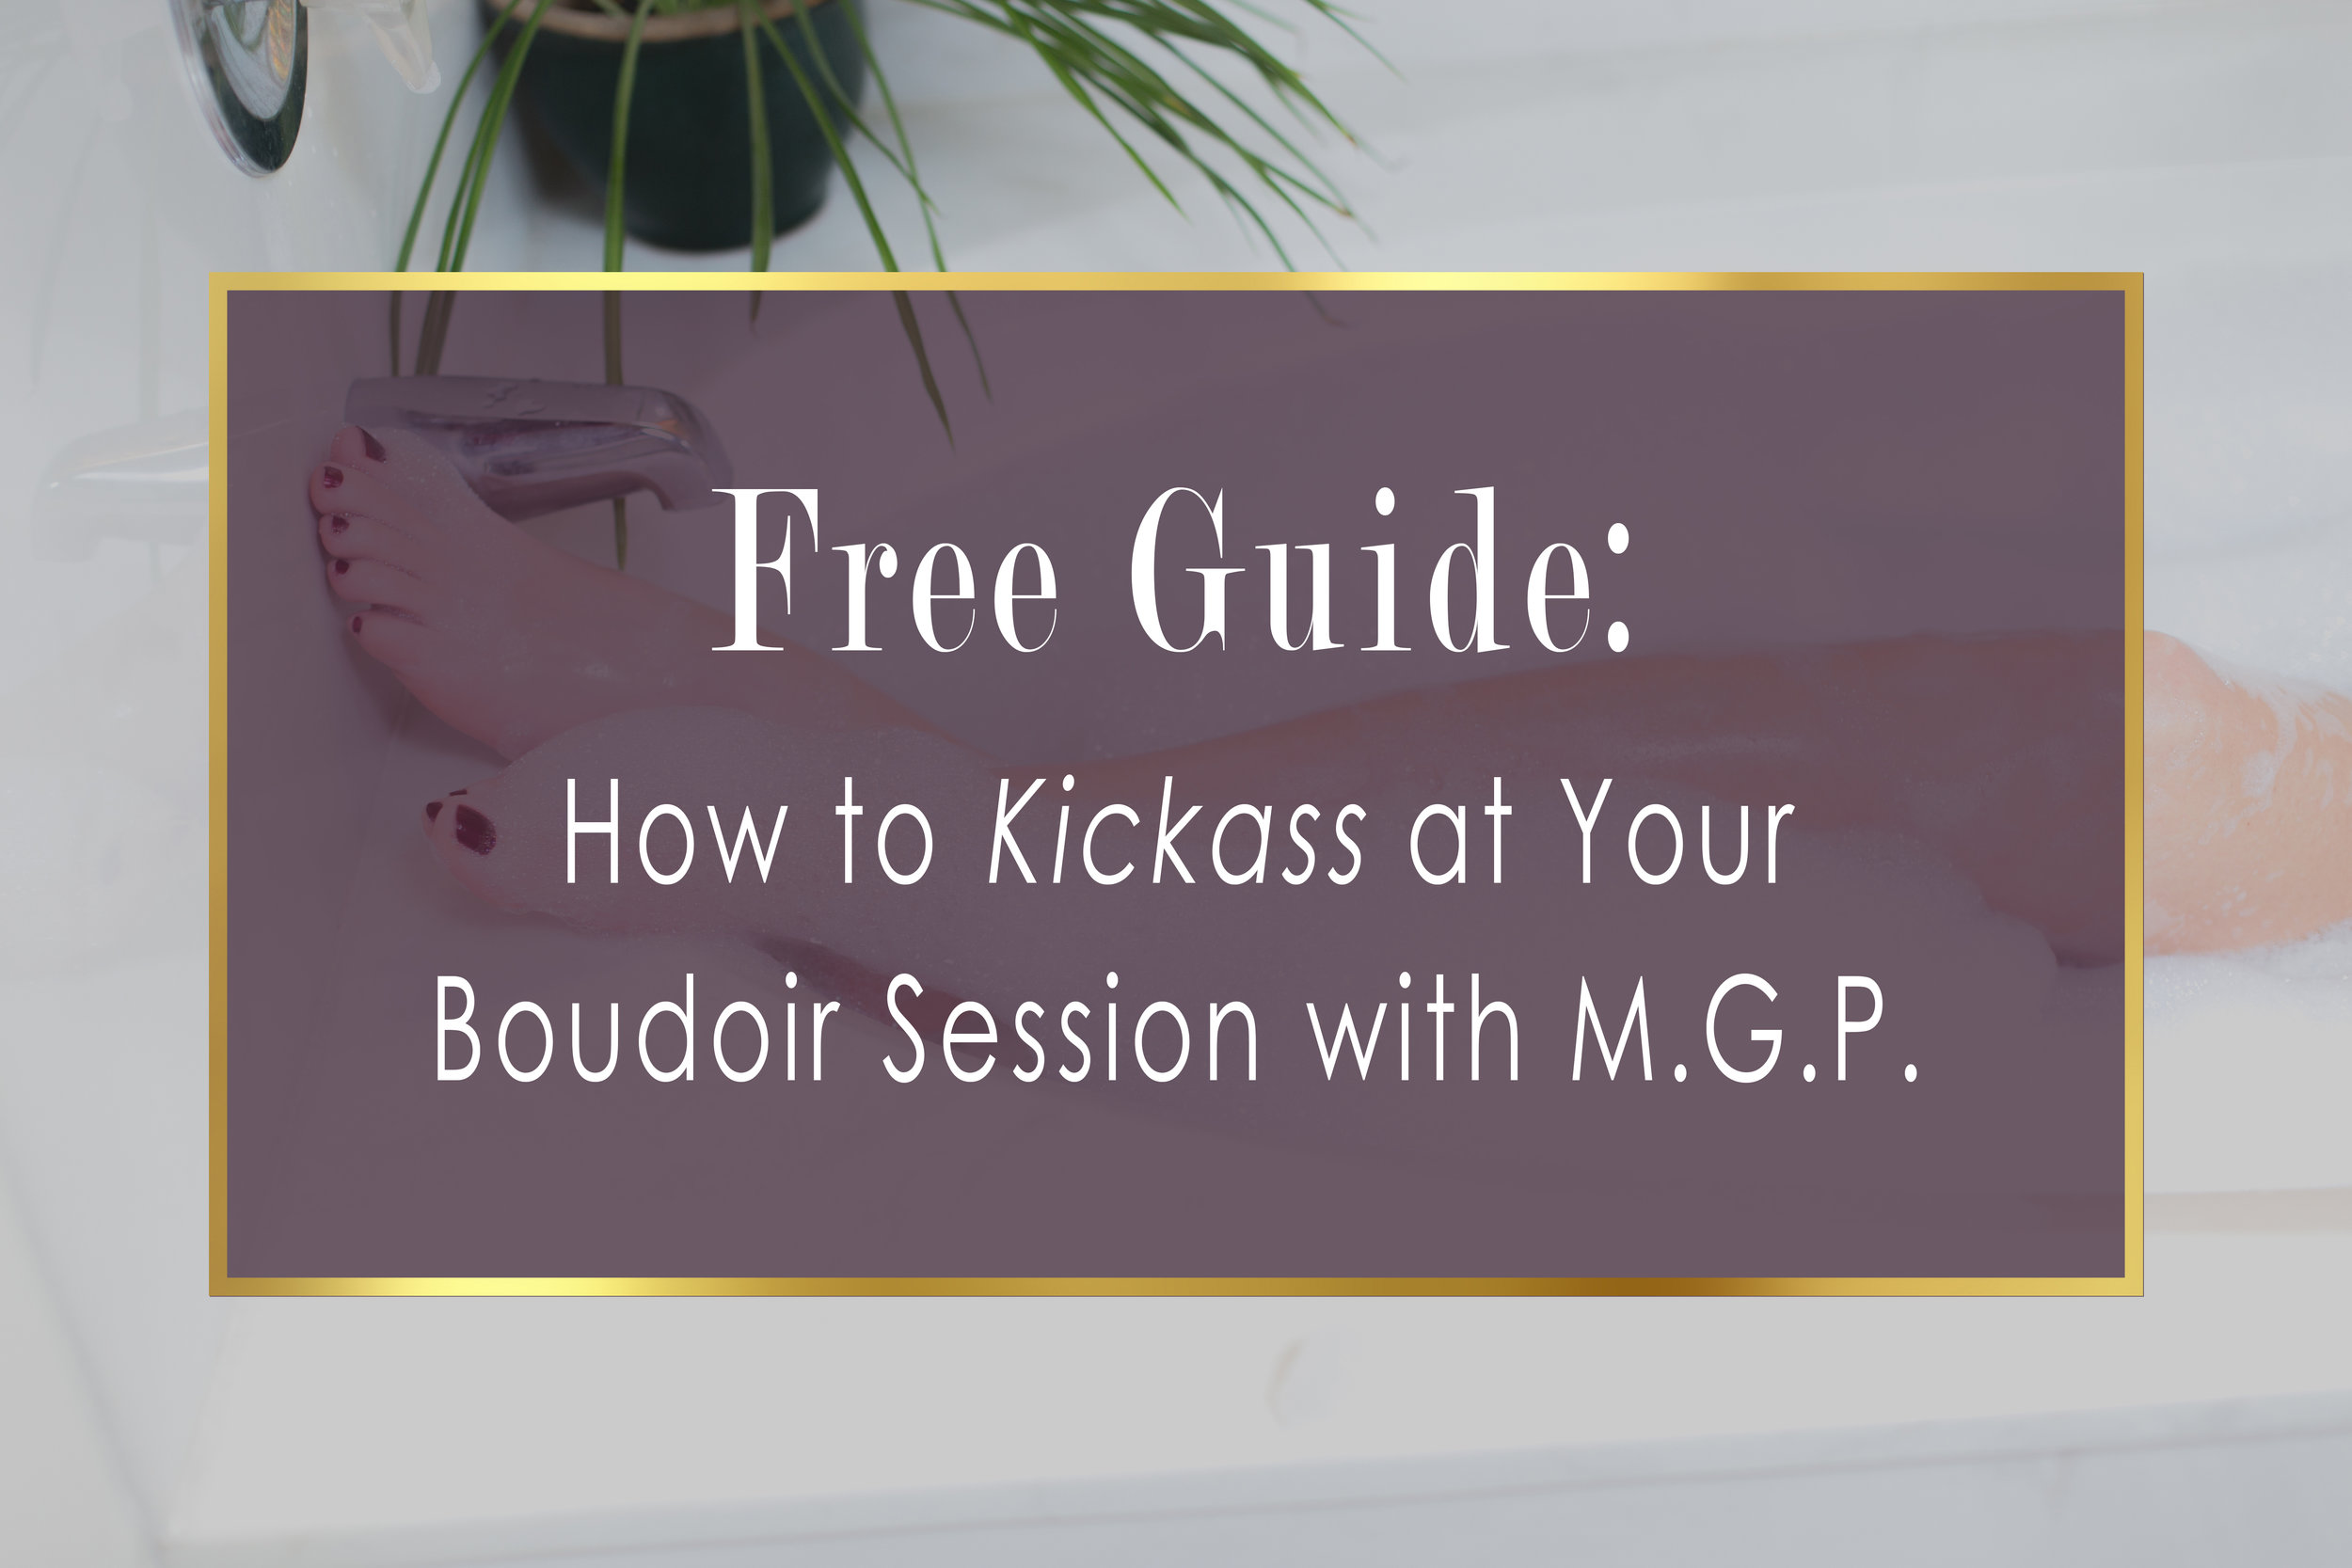 Sign up to become a VIP member with Magnolia Grace Photography and get your free guide to kickass at your boudoir session!